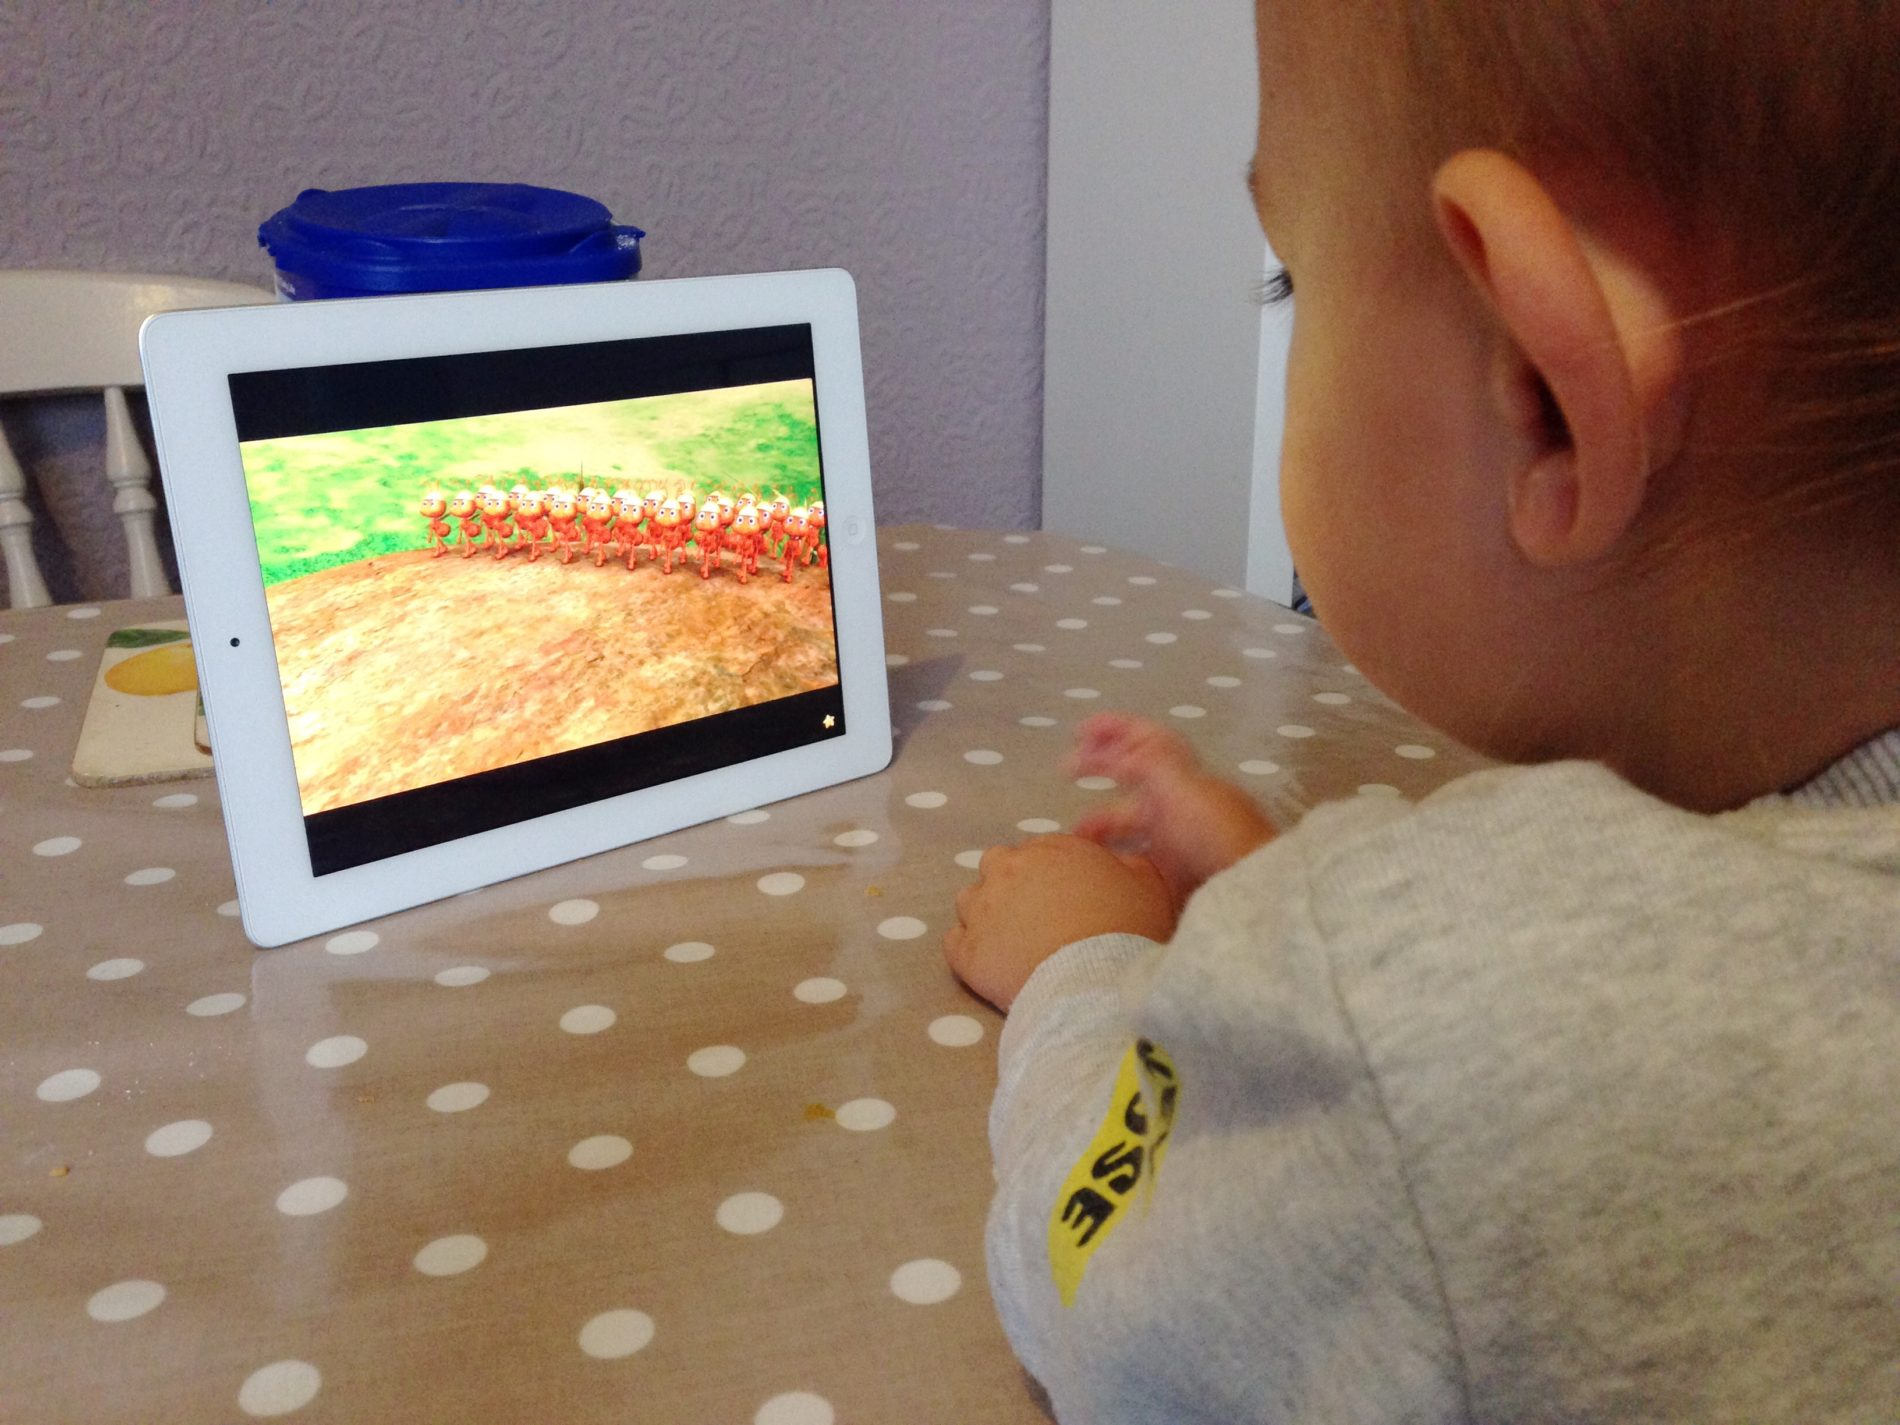 My love/hate relationship with toddlers and YouTube